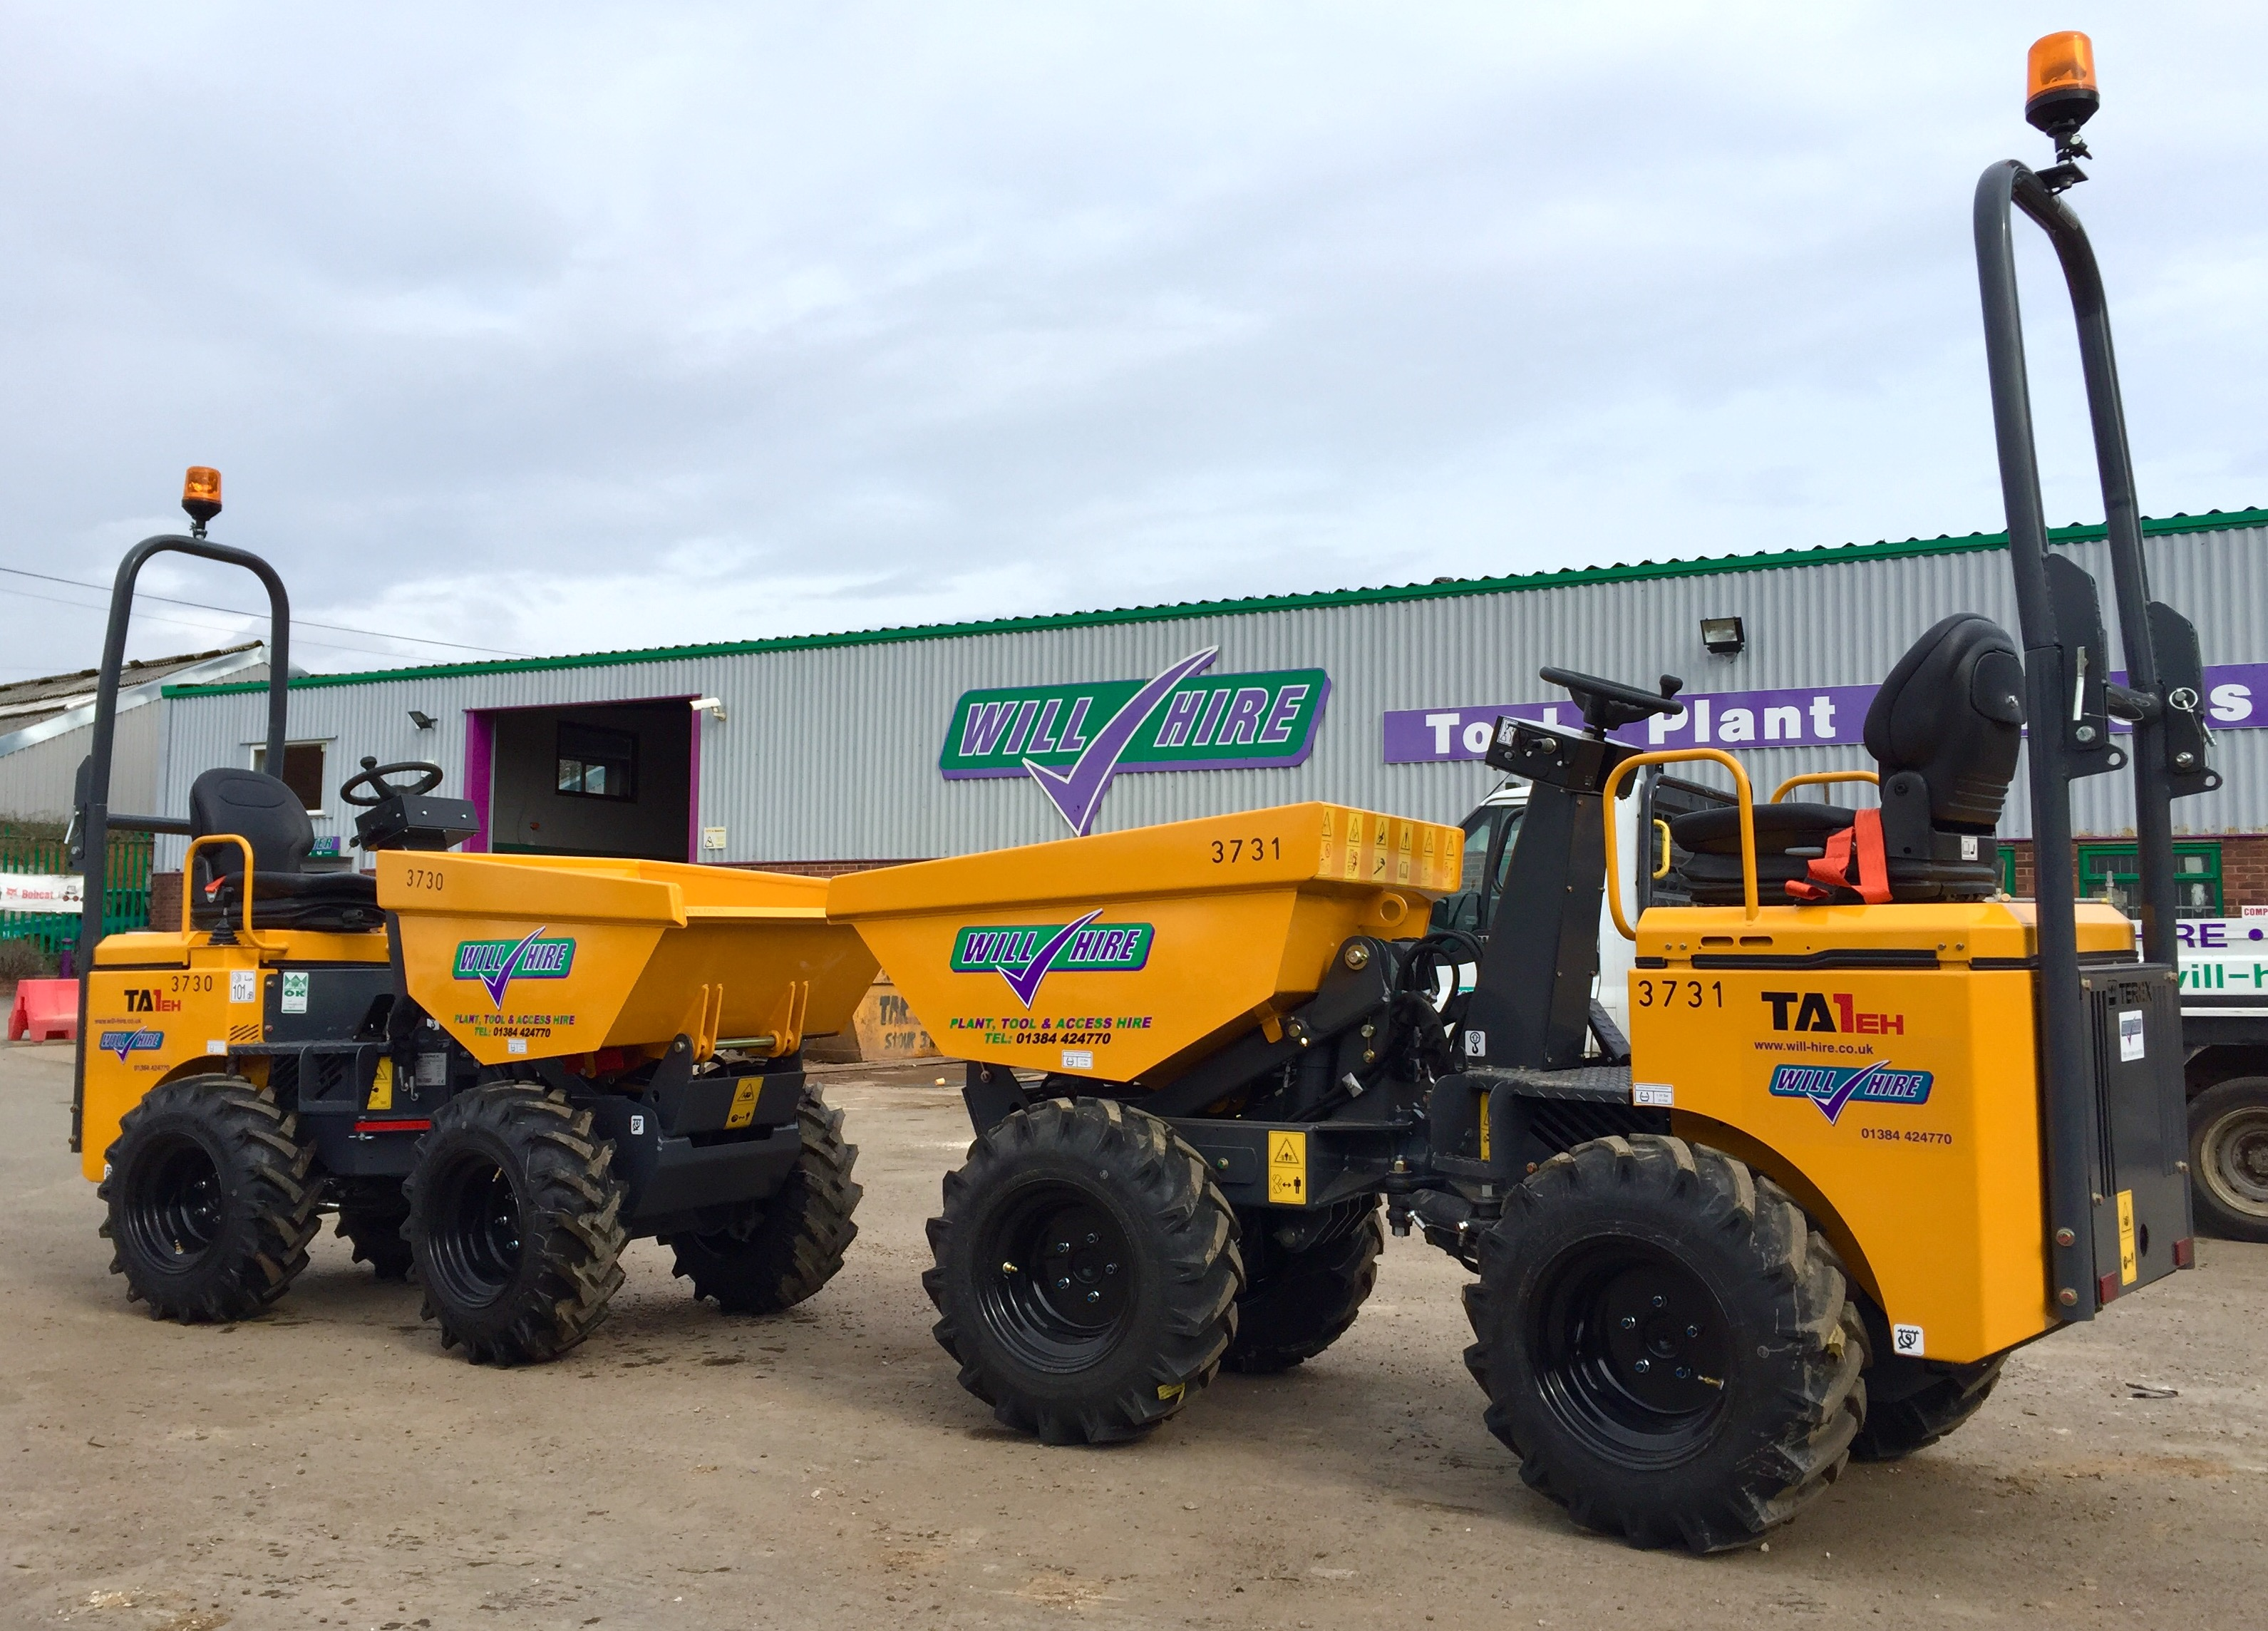 1t high lift dumper  Terex TA1EH